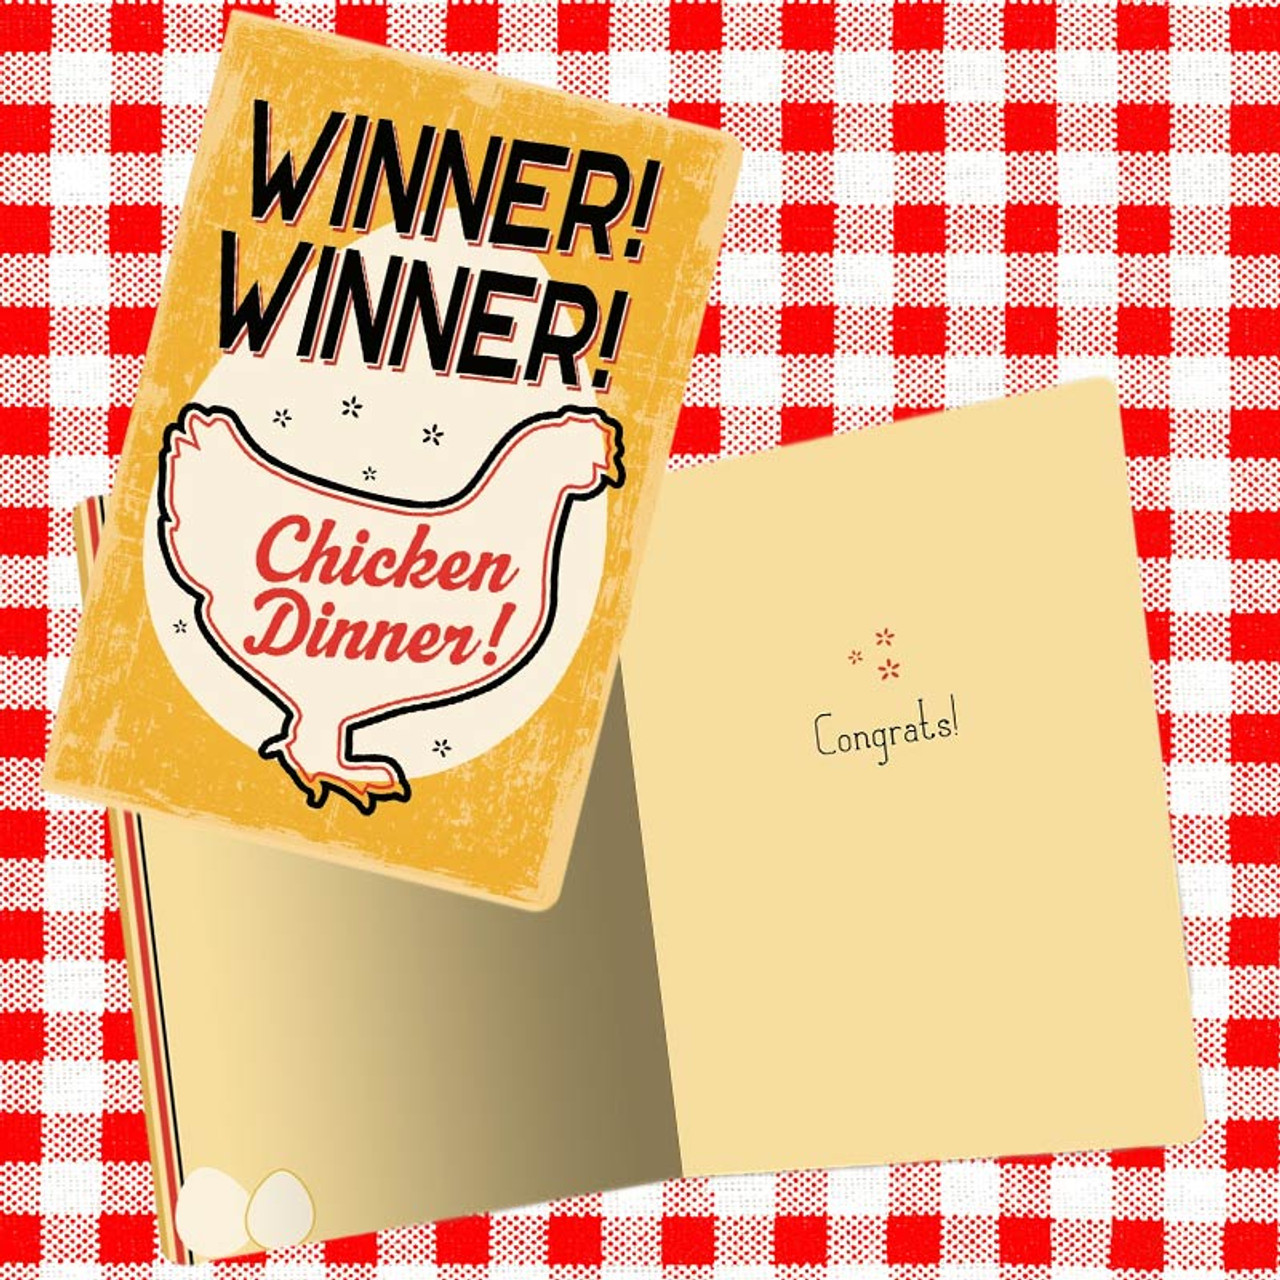 Winner Winner Chicken Dinner Congratulations Card